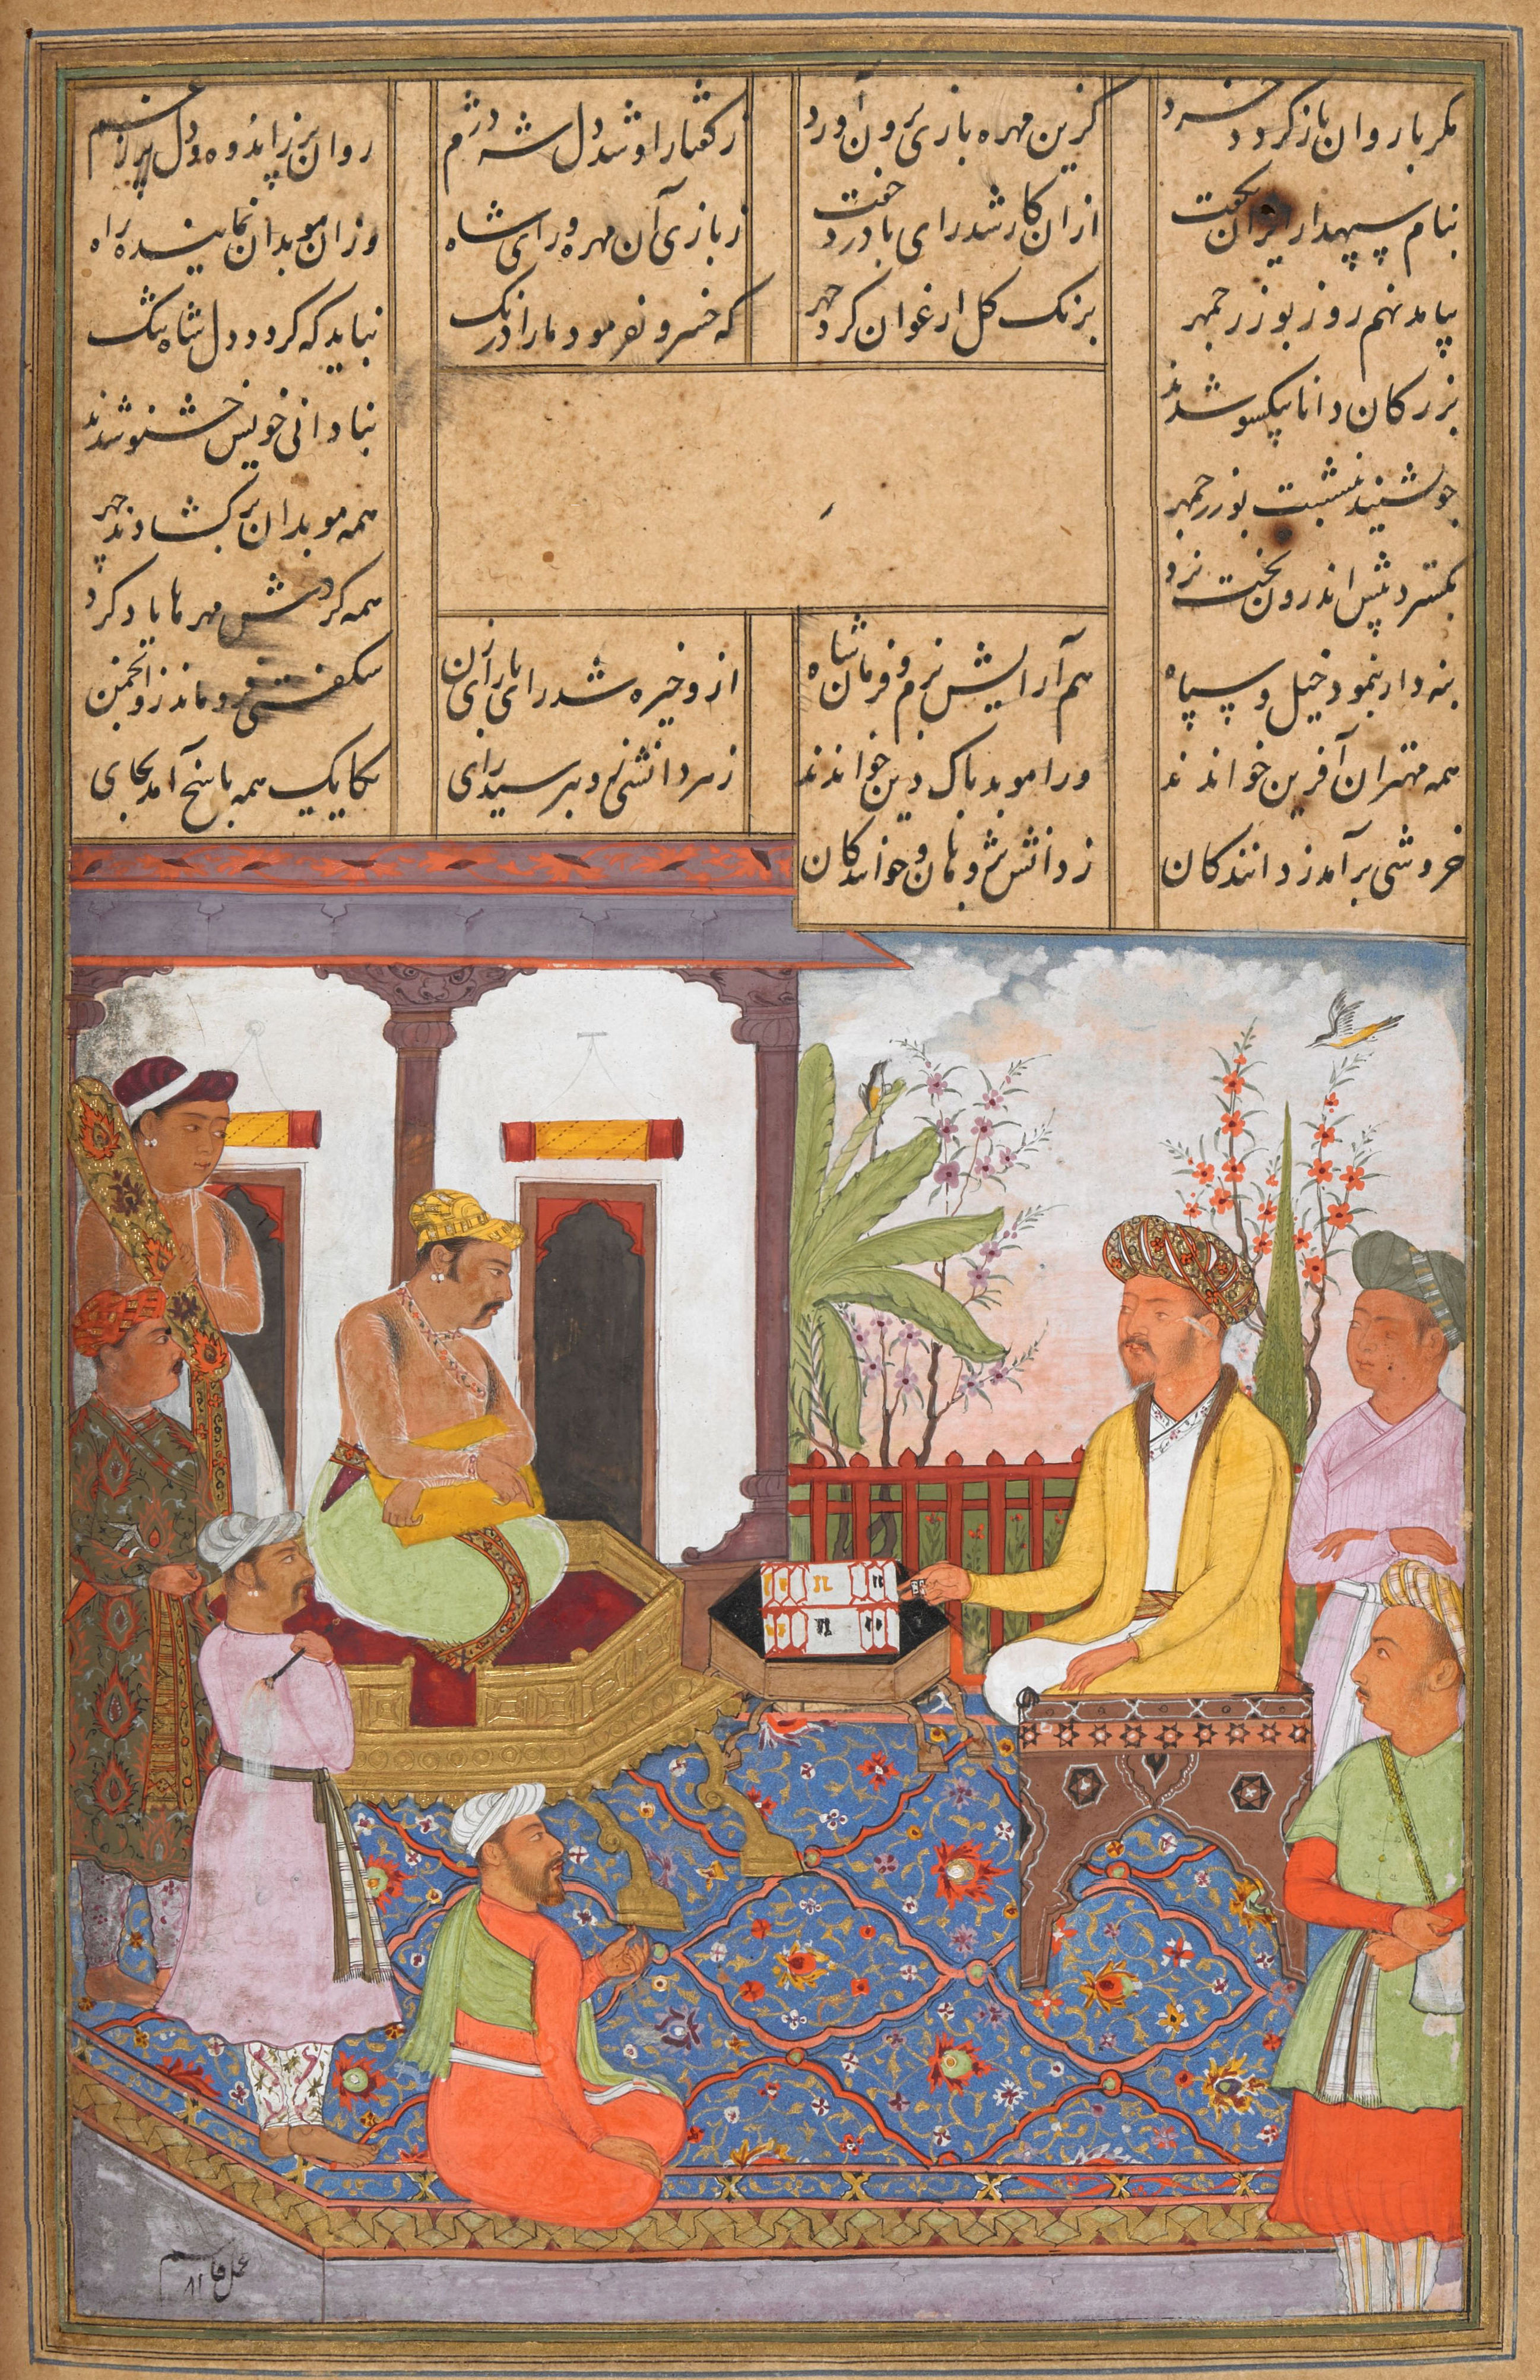 Drawing from a 15th cenutry Shahnameh Illuminated Manuscript showing Bozorgmehr explaining how to play Nard with 2 dice in his hand, and a rather schematic backgammon board. British Library, Manuscript Add MS 5600, folio f.483v.